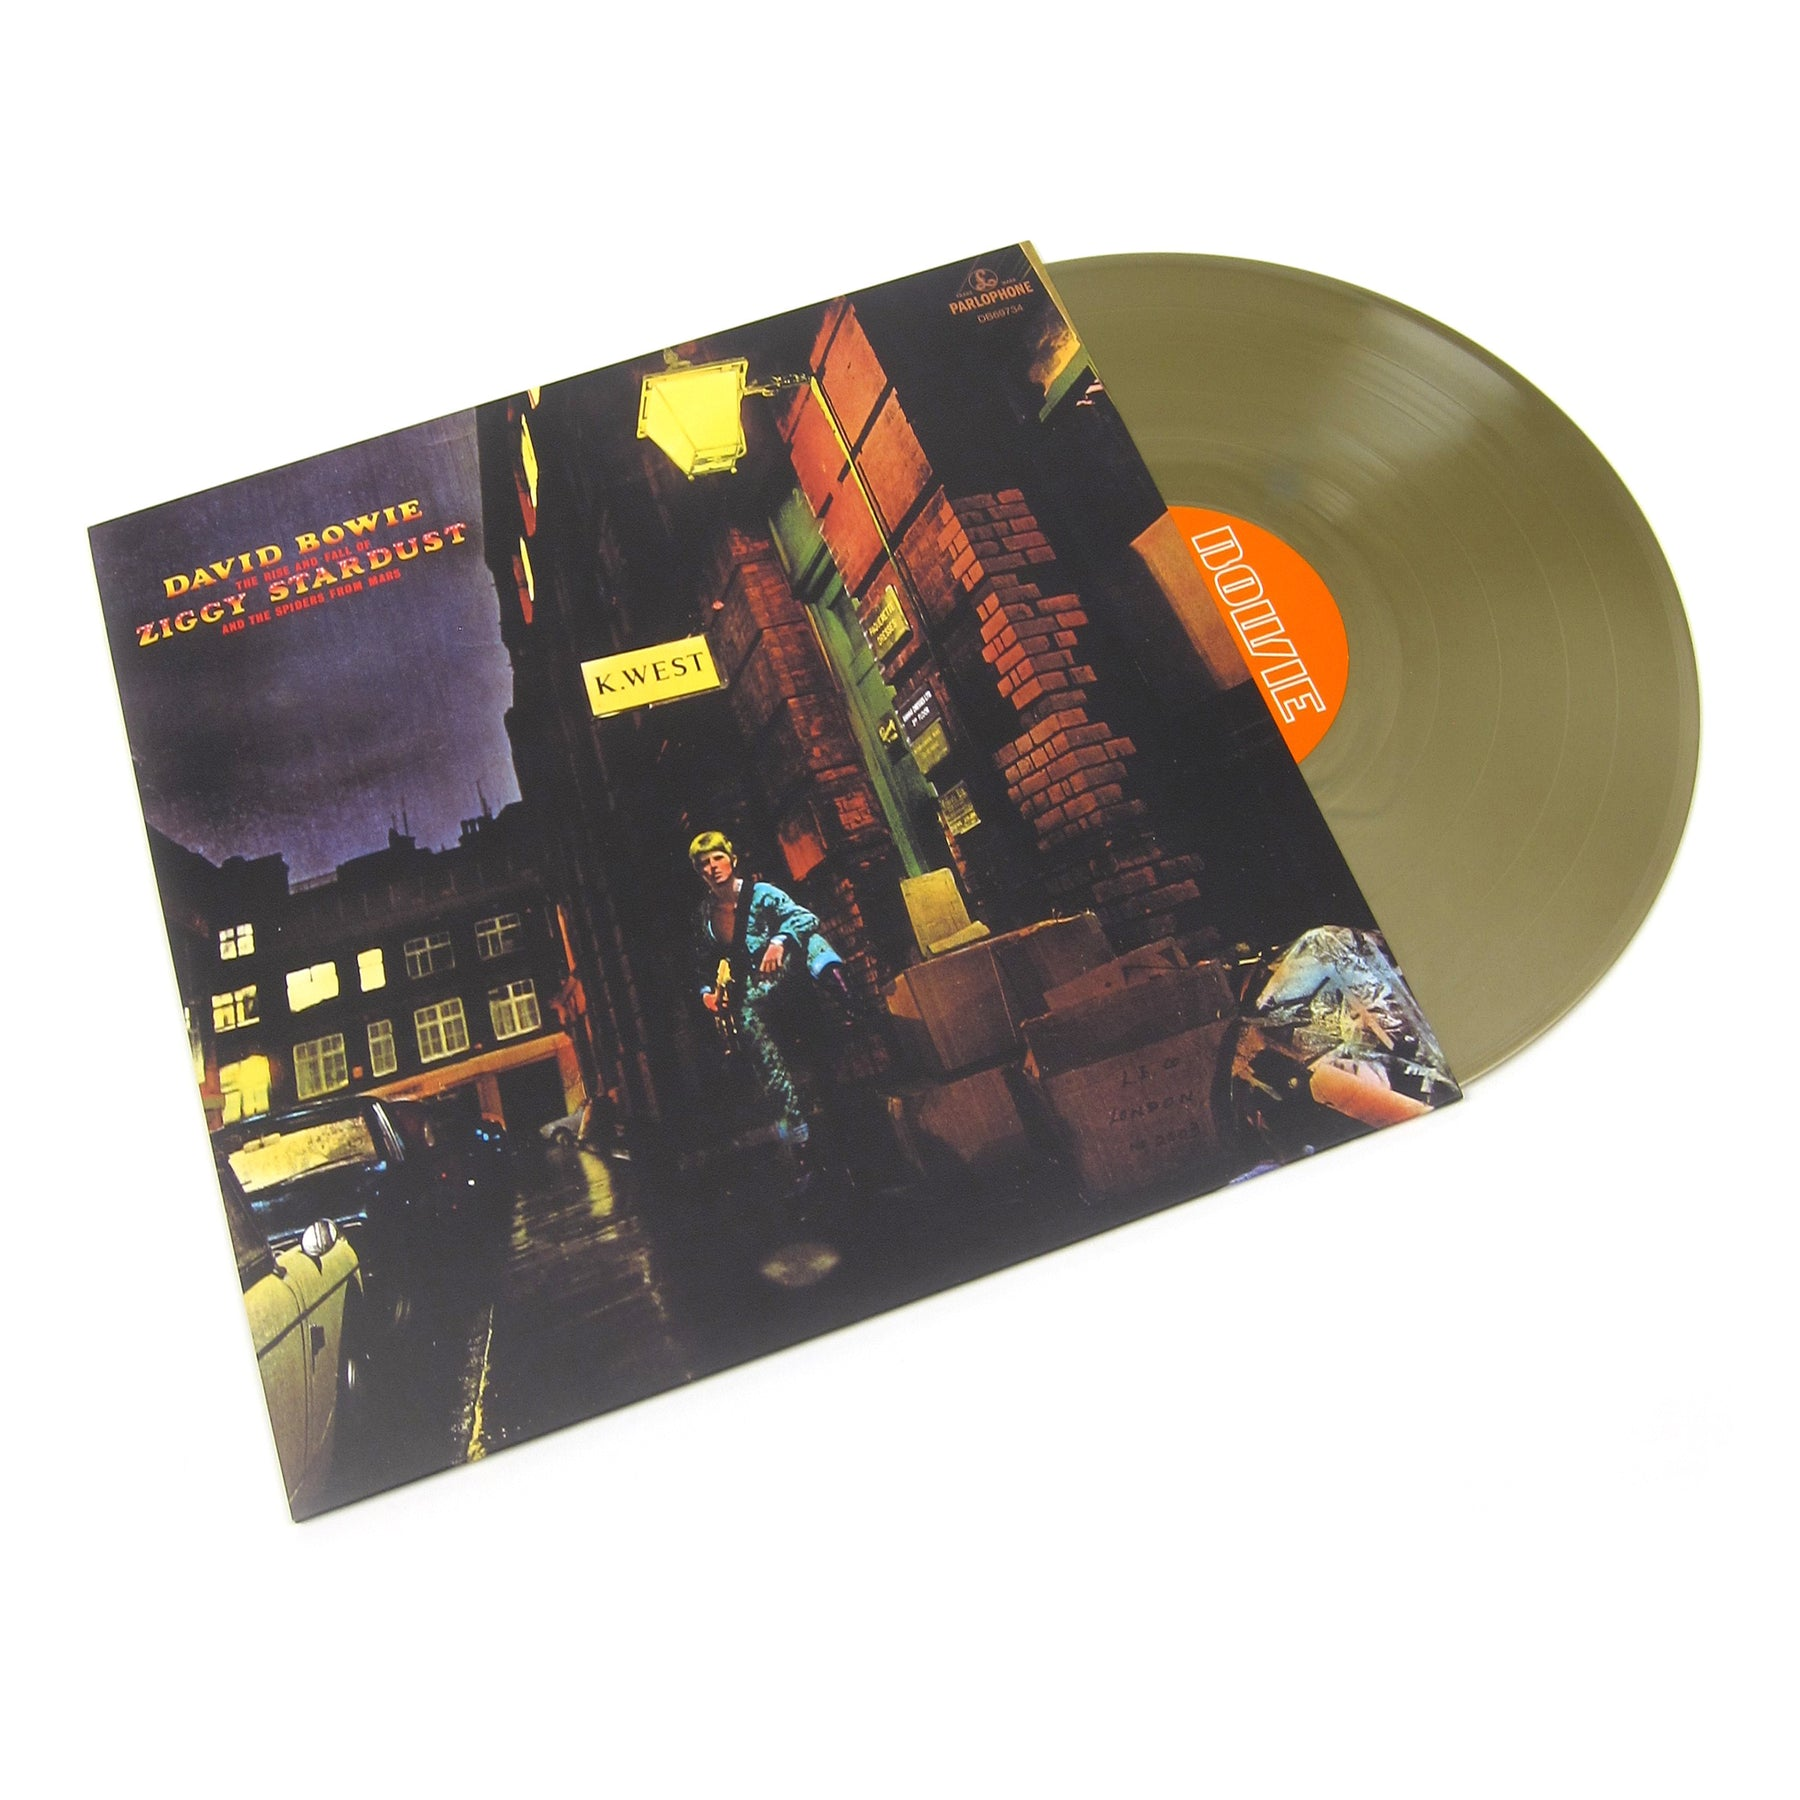 David Bowie The Rise and Fall Of Ziggy Stardust And The Spiders From Mars  (Gold Colored Vinyl) Vinyl LP